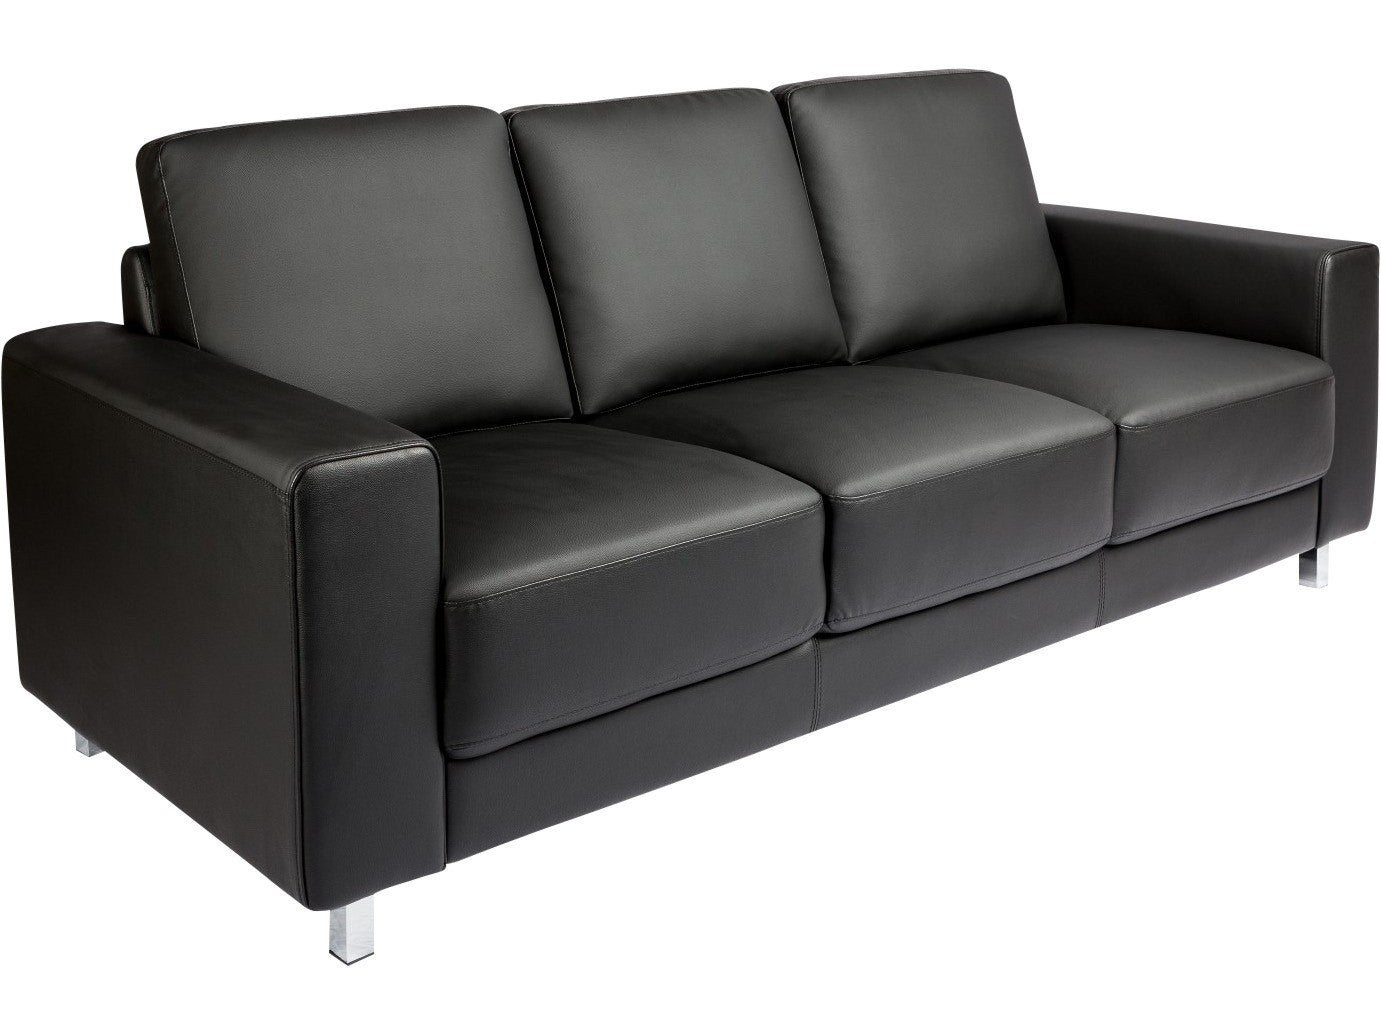 Scandi Love Sofa Sovereign Furniture